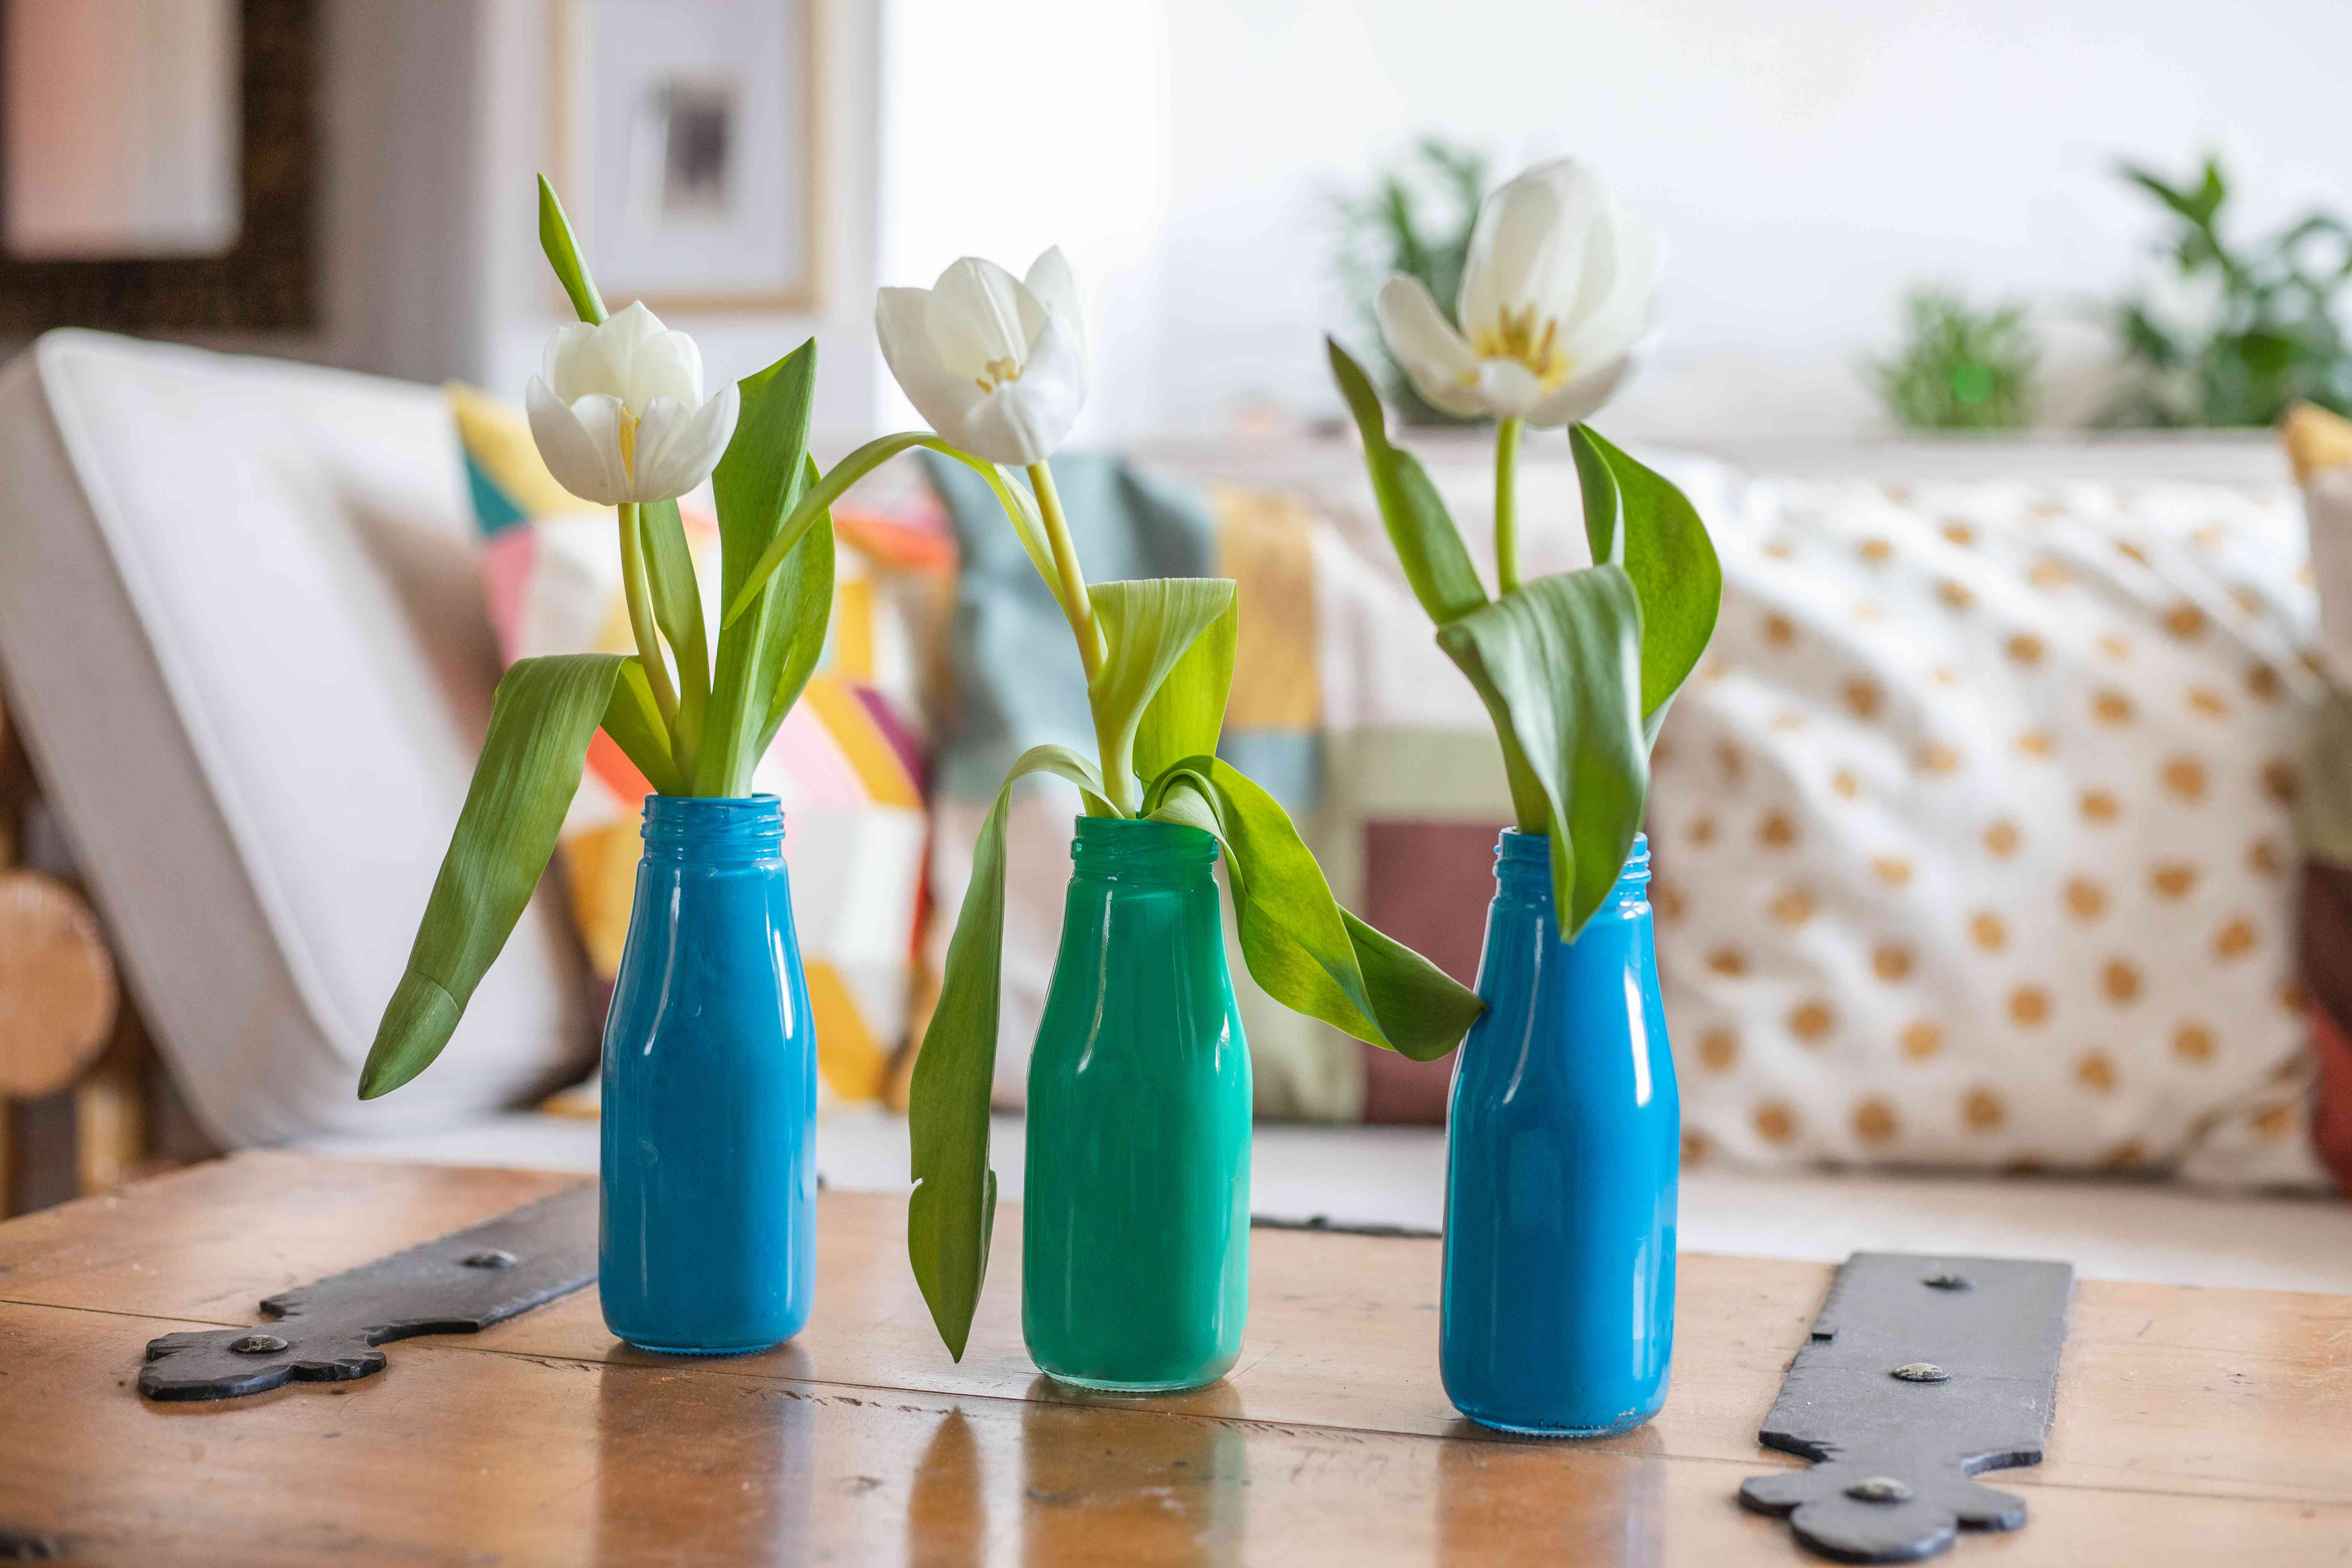 glass bottles upcycled into painted bud vases holding white tulips on wooden table